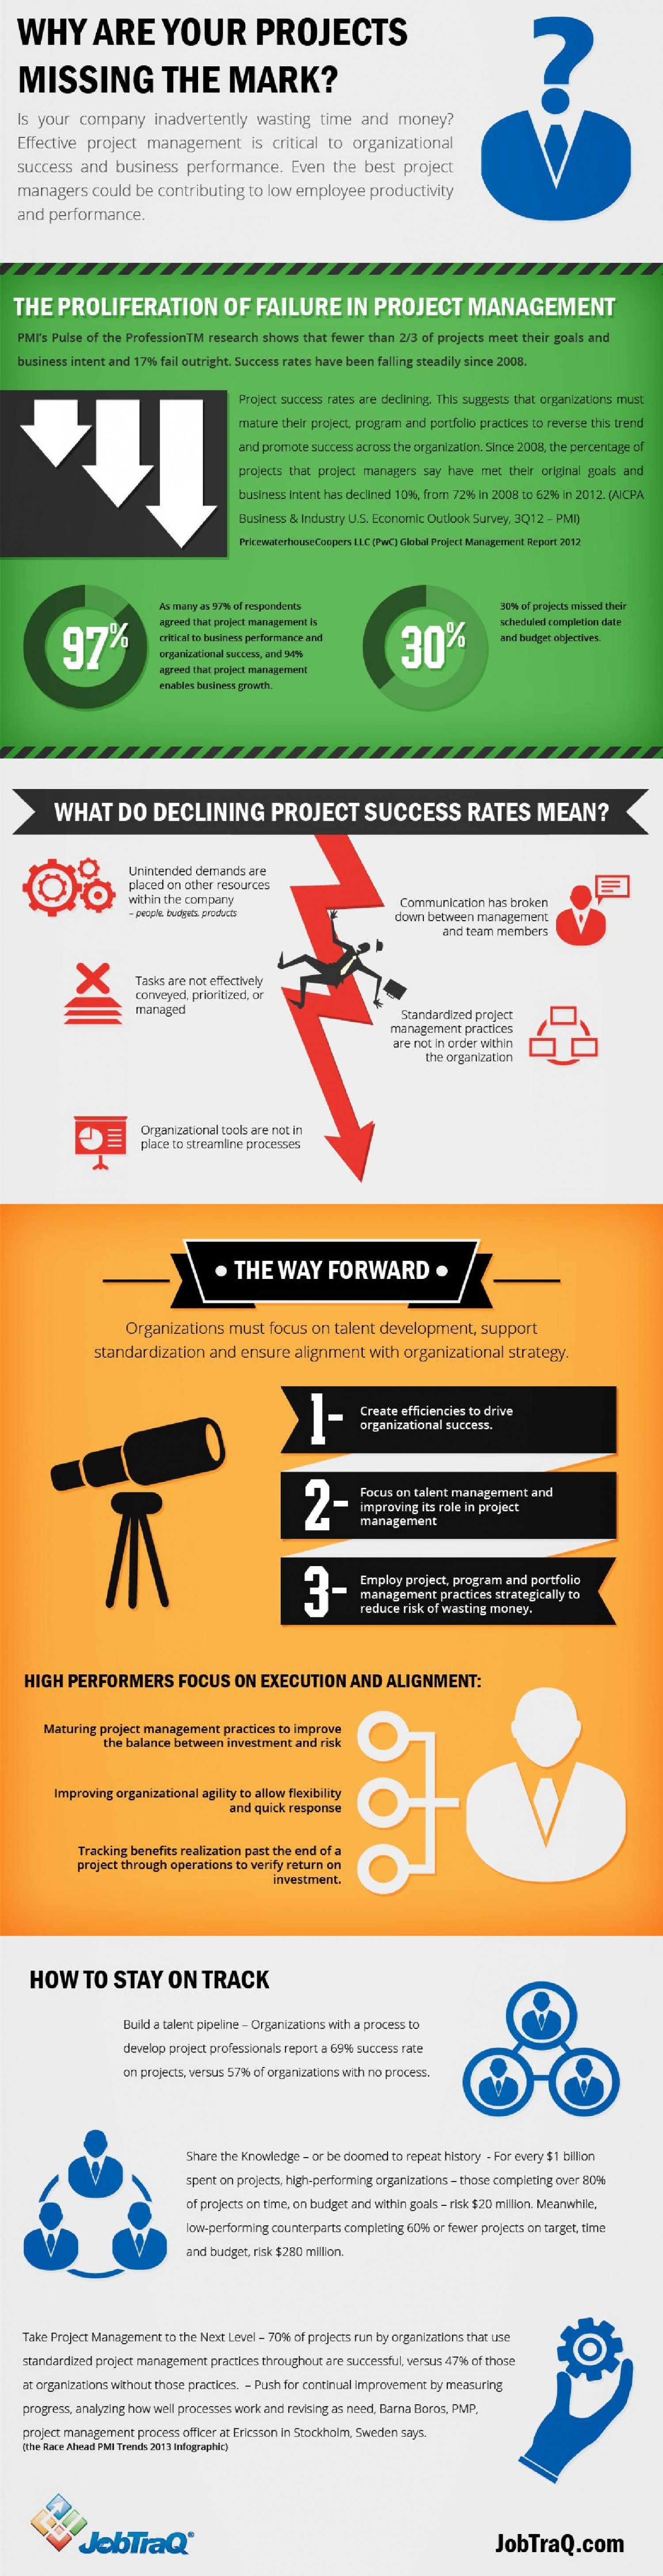 Why are Your Projects Missing the Mark? Infographic